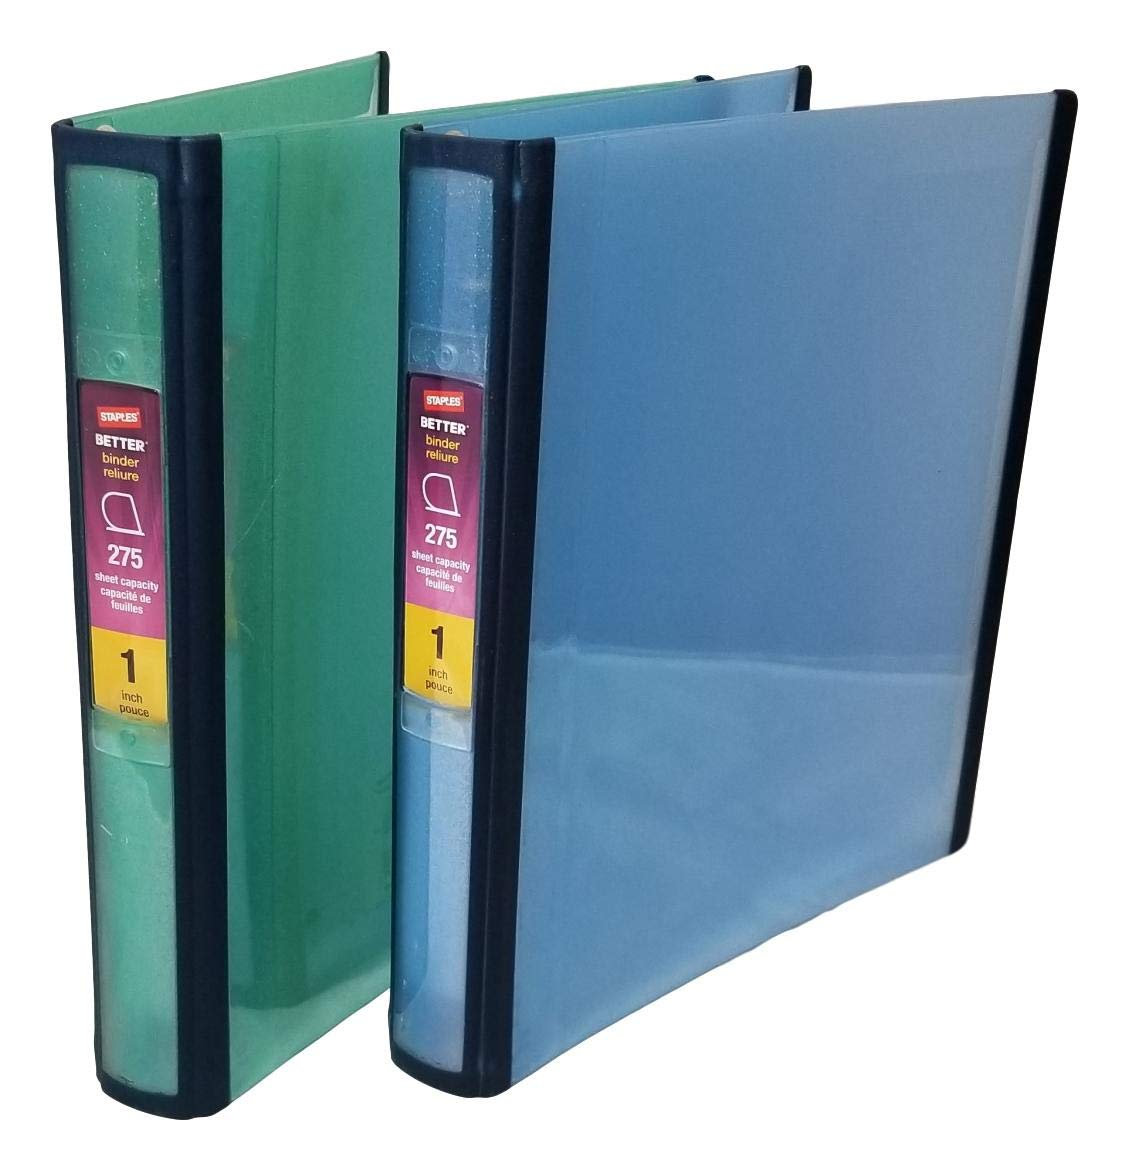 Staples (TM) Glitter Better Binder, 1 Inch, 275 Sheet Capacity, 3 D-Rings, Combo Set of Two, Colors: Blue, Green ((29625) Staples Inc.